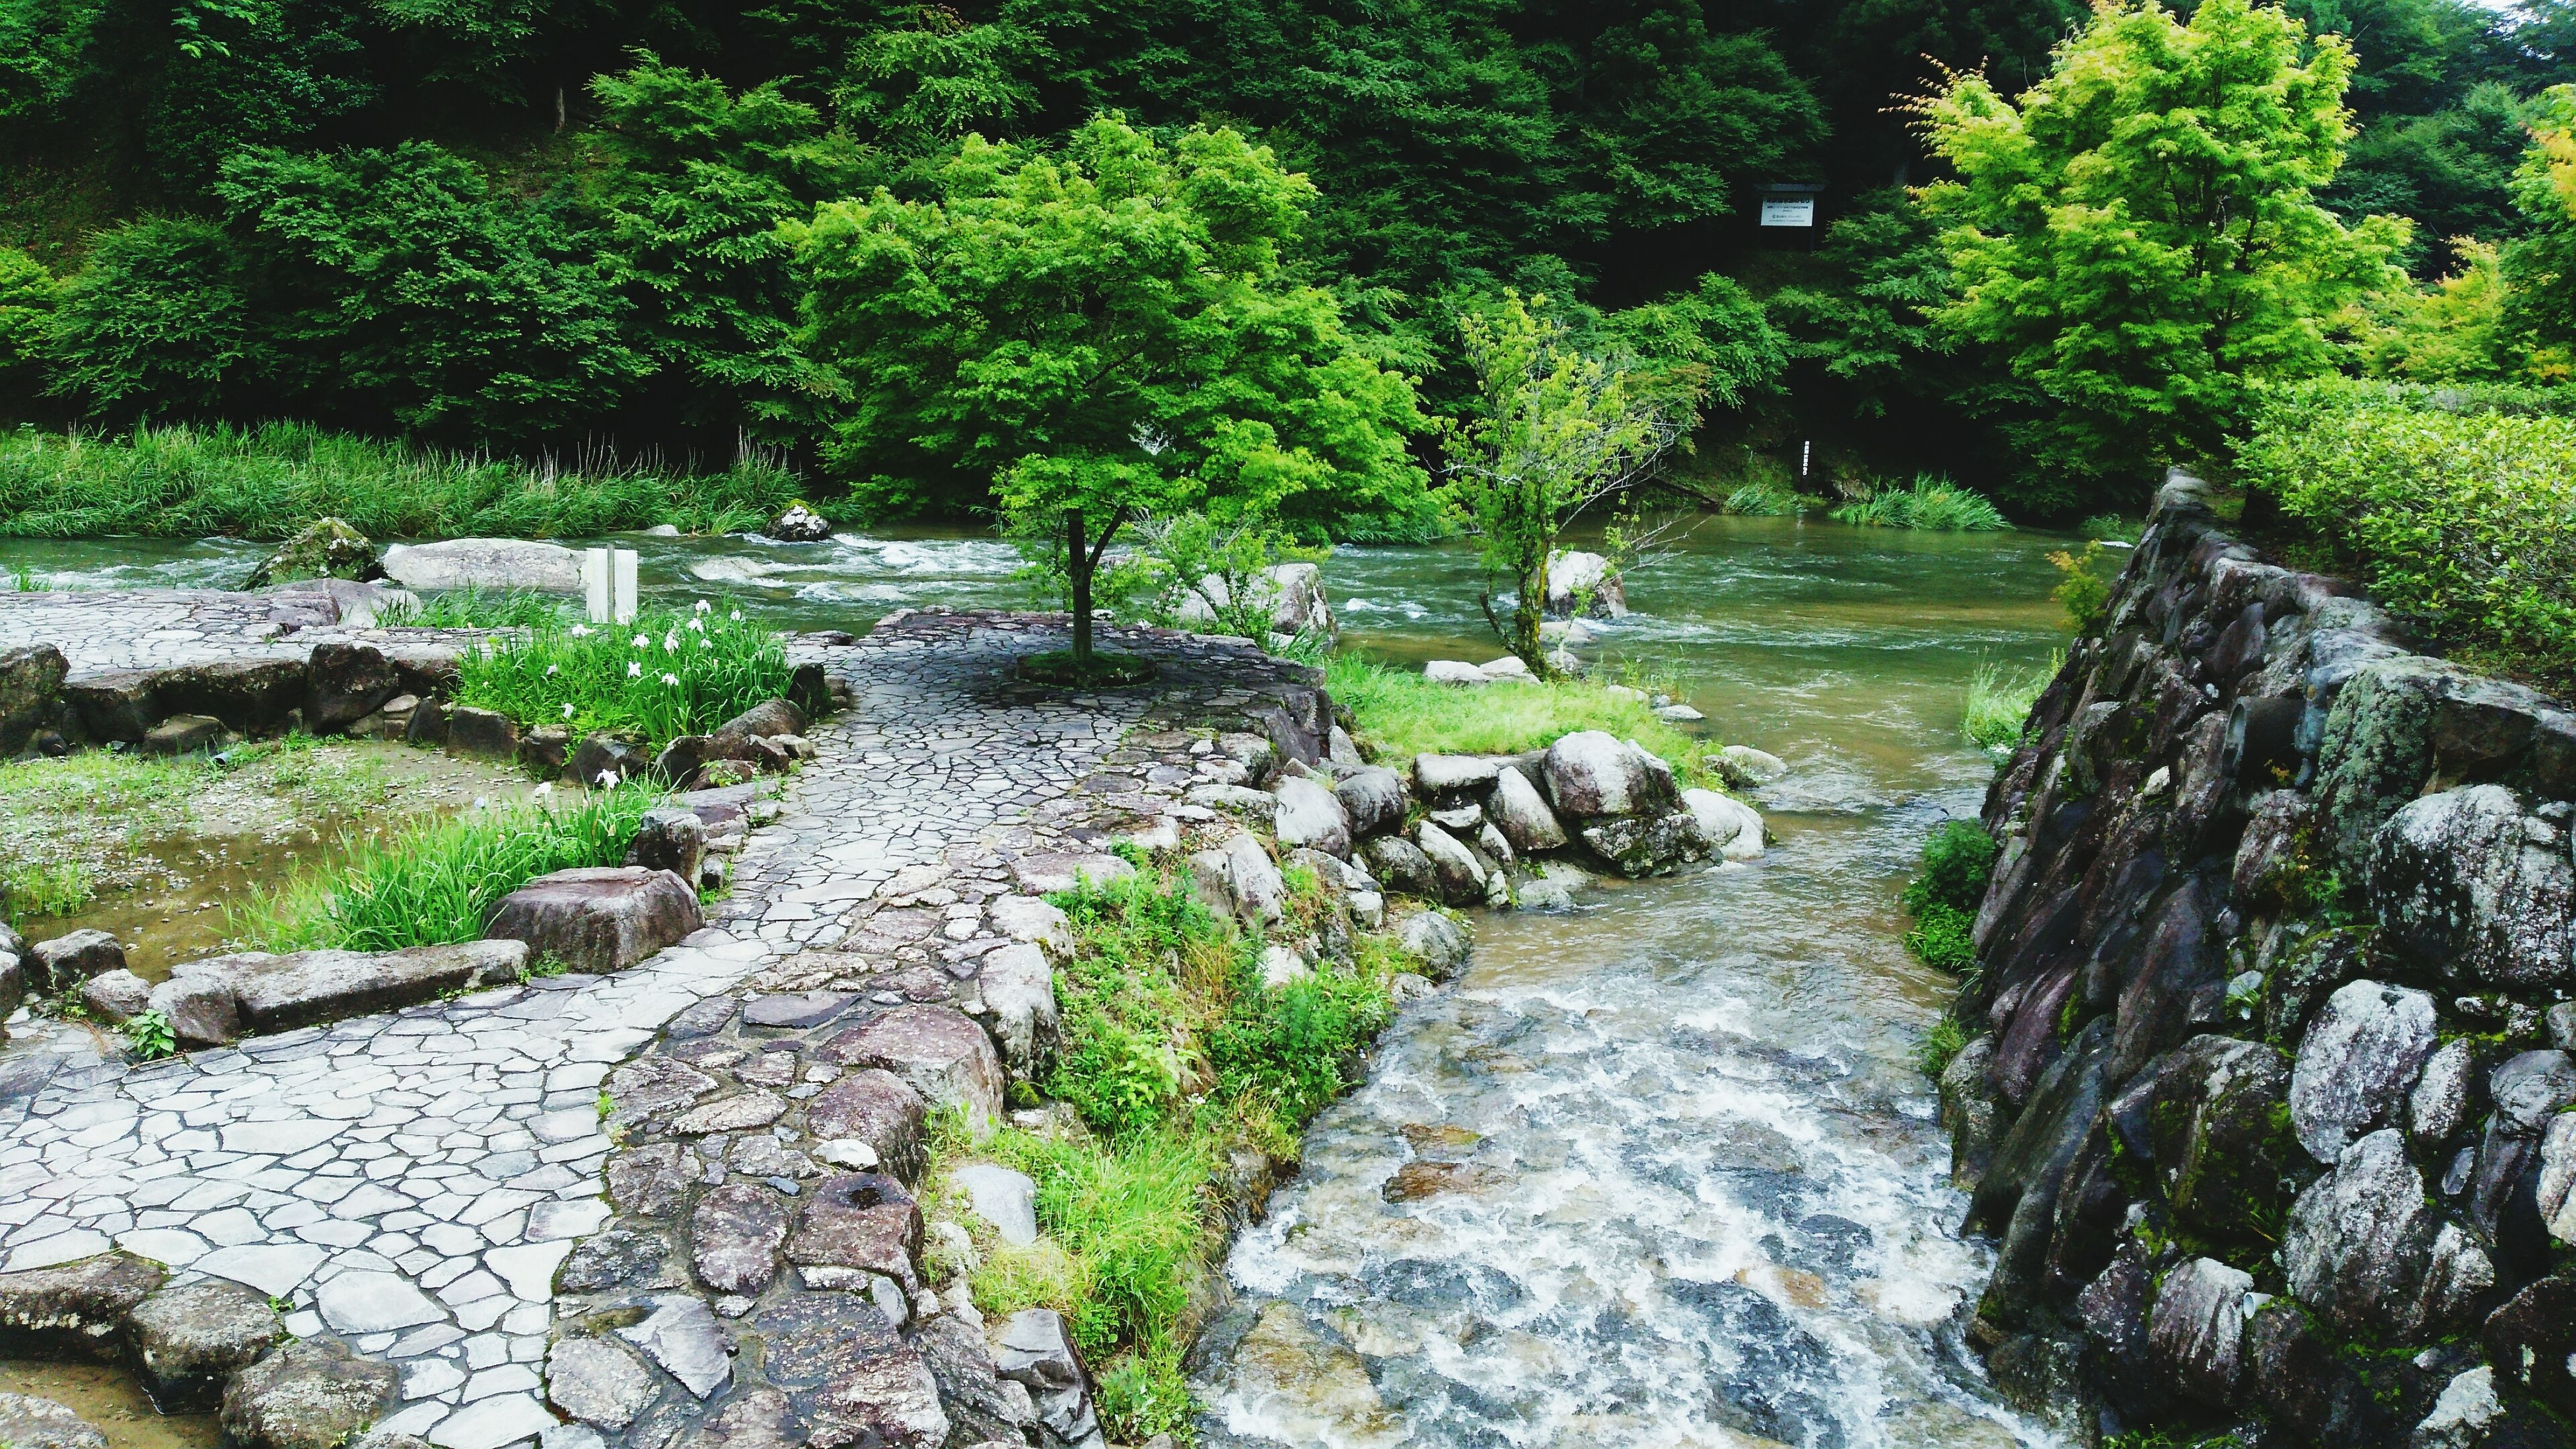 tree, water, green color, forest, stream, rock - object, nature, plant, growth, tranquility, beauty in nature, flowing water, flowing, moss, scenics, stone, rock, tranquil scene, day, river